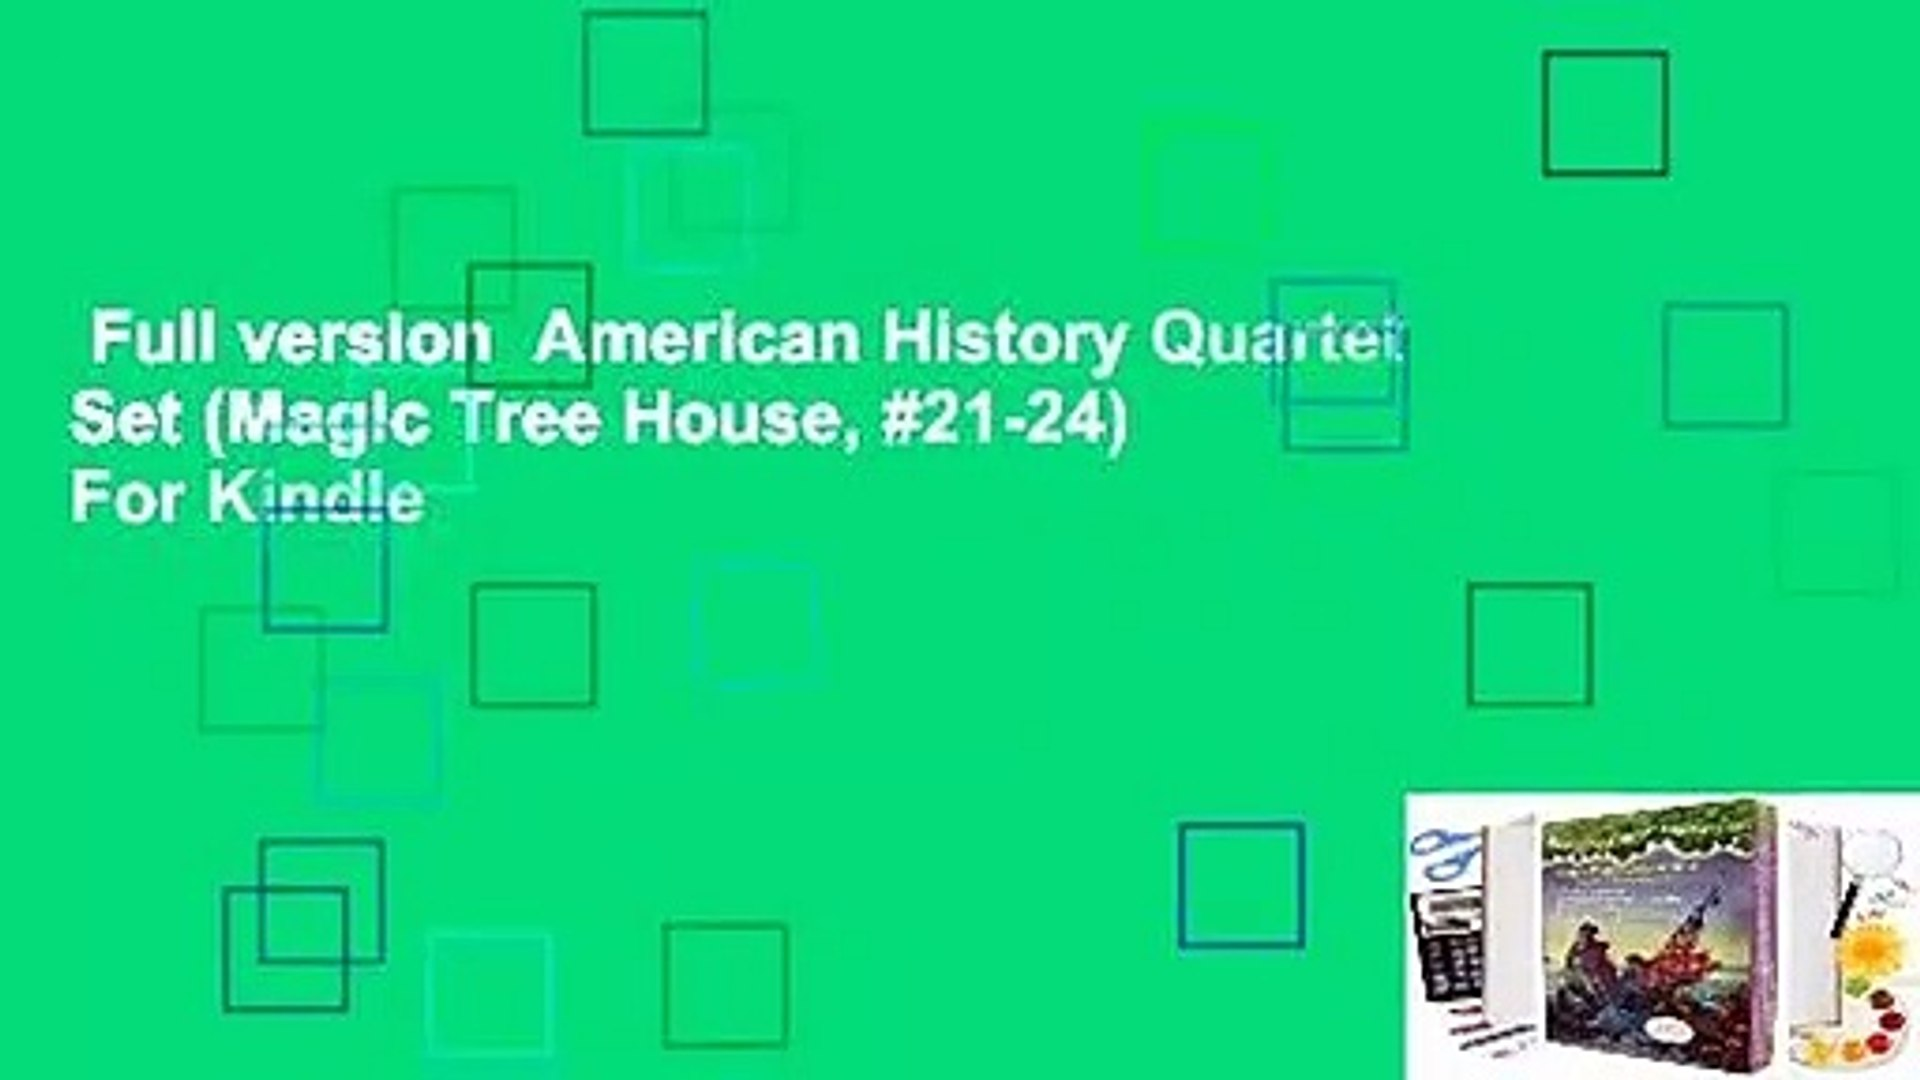 Full version  American History Quartet Set (Magic Tree House, #21-24)  For Kindle